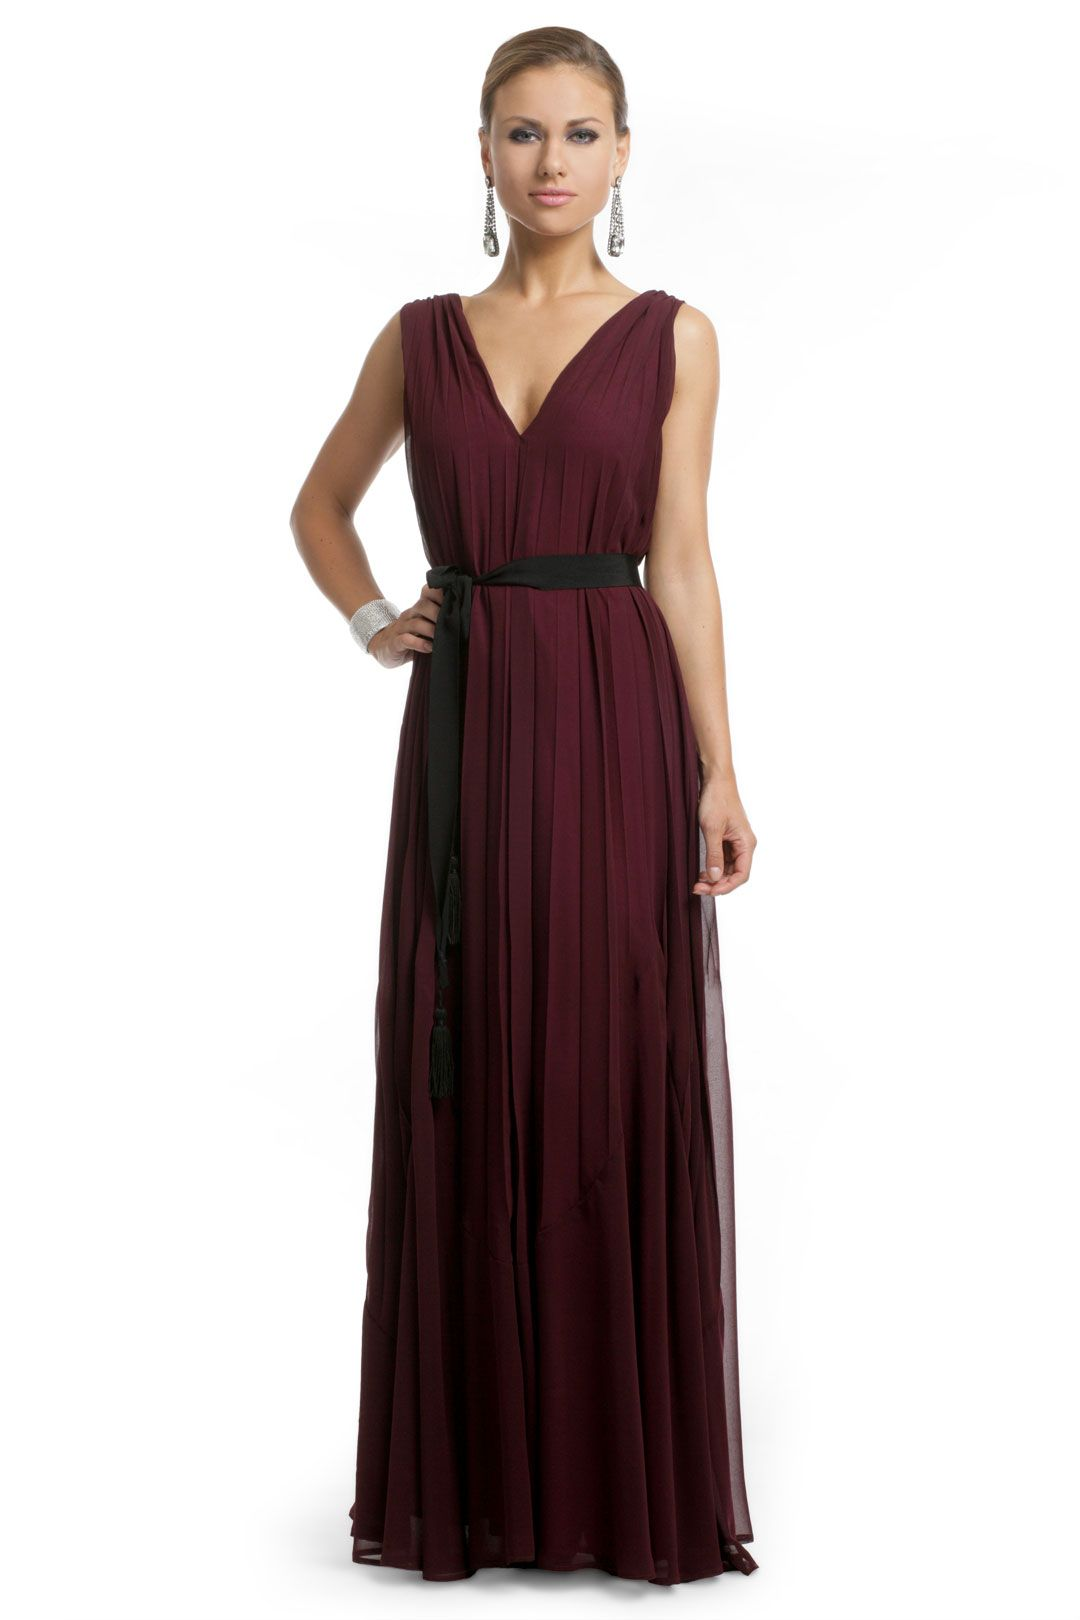 Burgundy bliss gown renting high heel and bliss burgundy bliss gown wine bridesmaid dressesfall ombrellifo Gallery